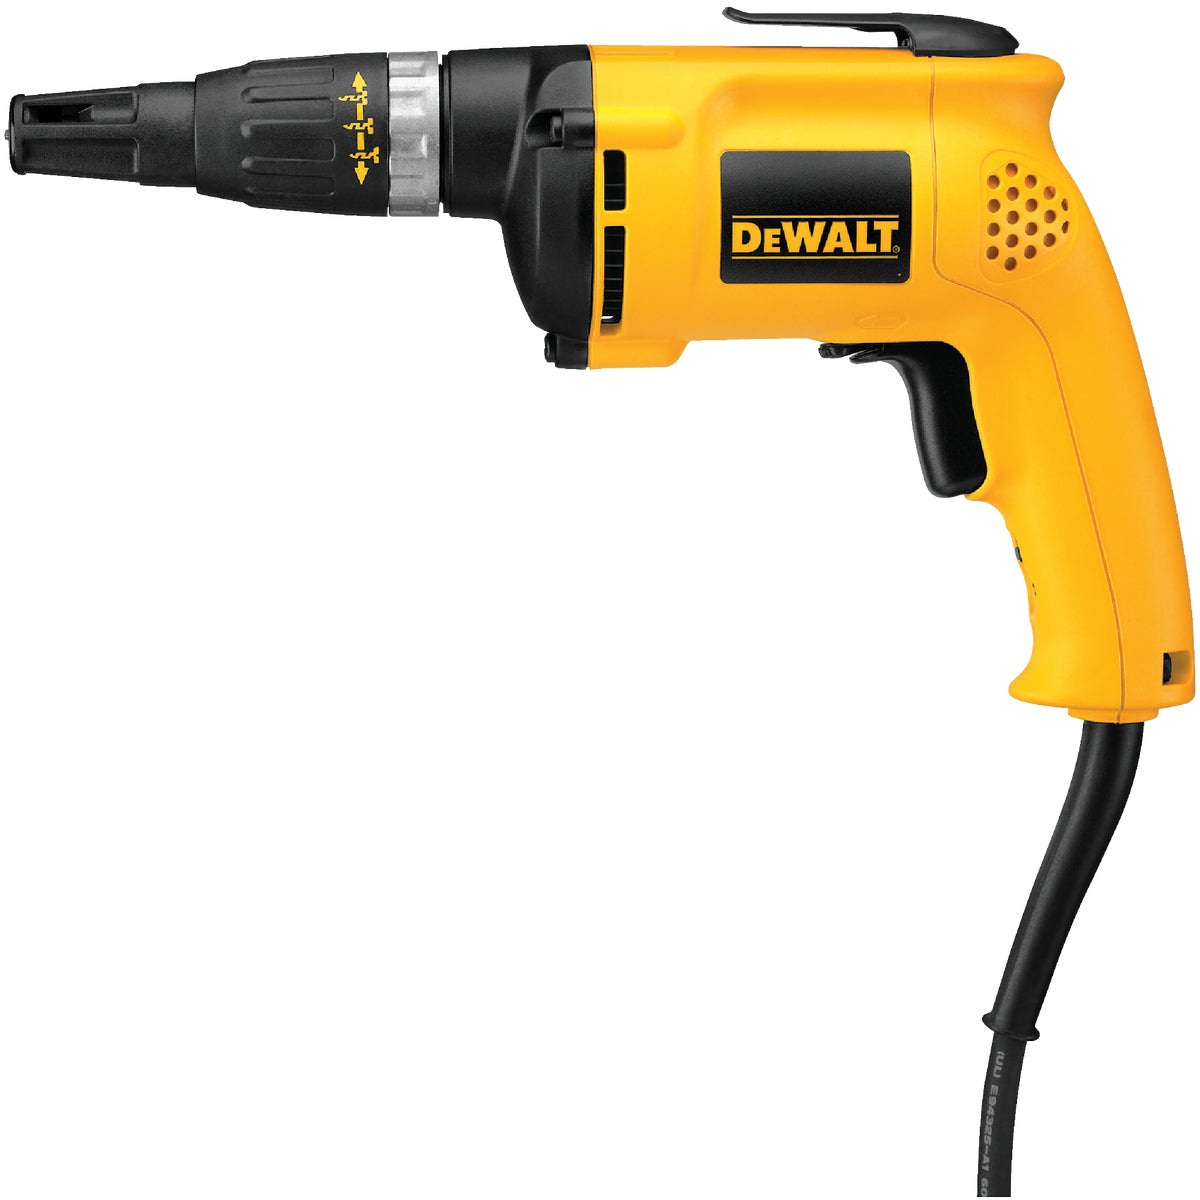 6A DRYWALL SCREWDRIVER - DW255 by DeWalt